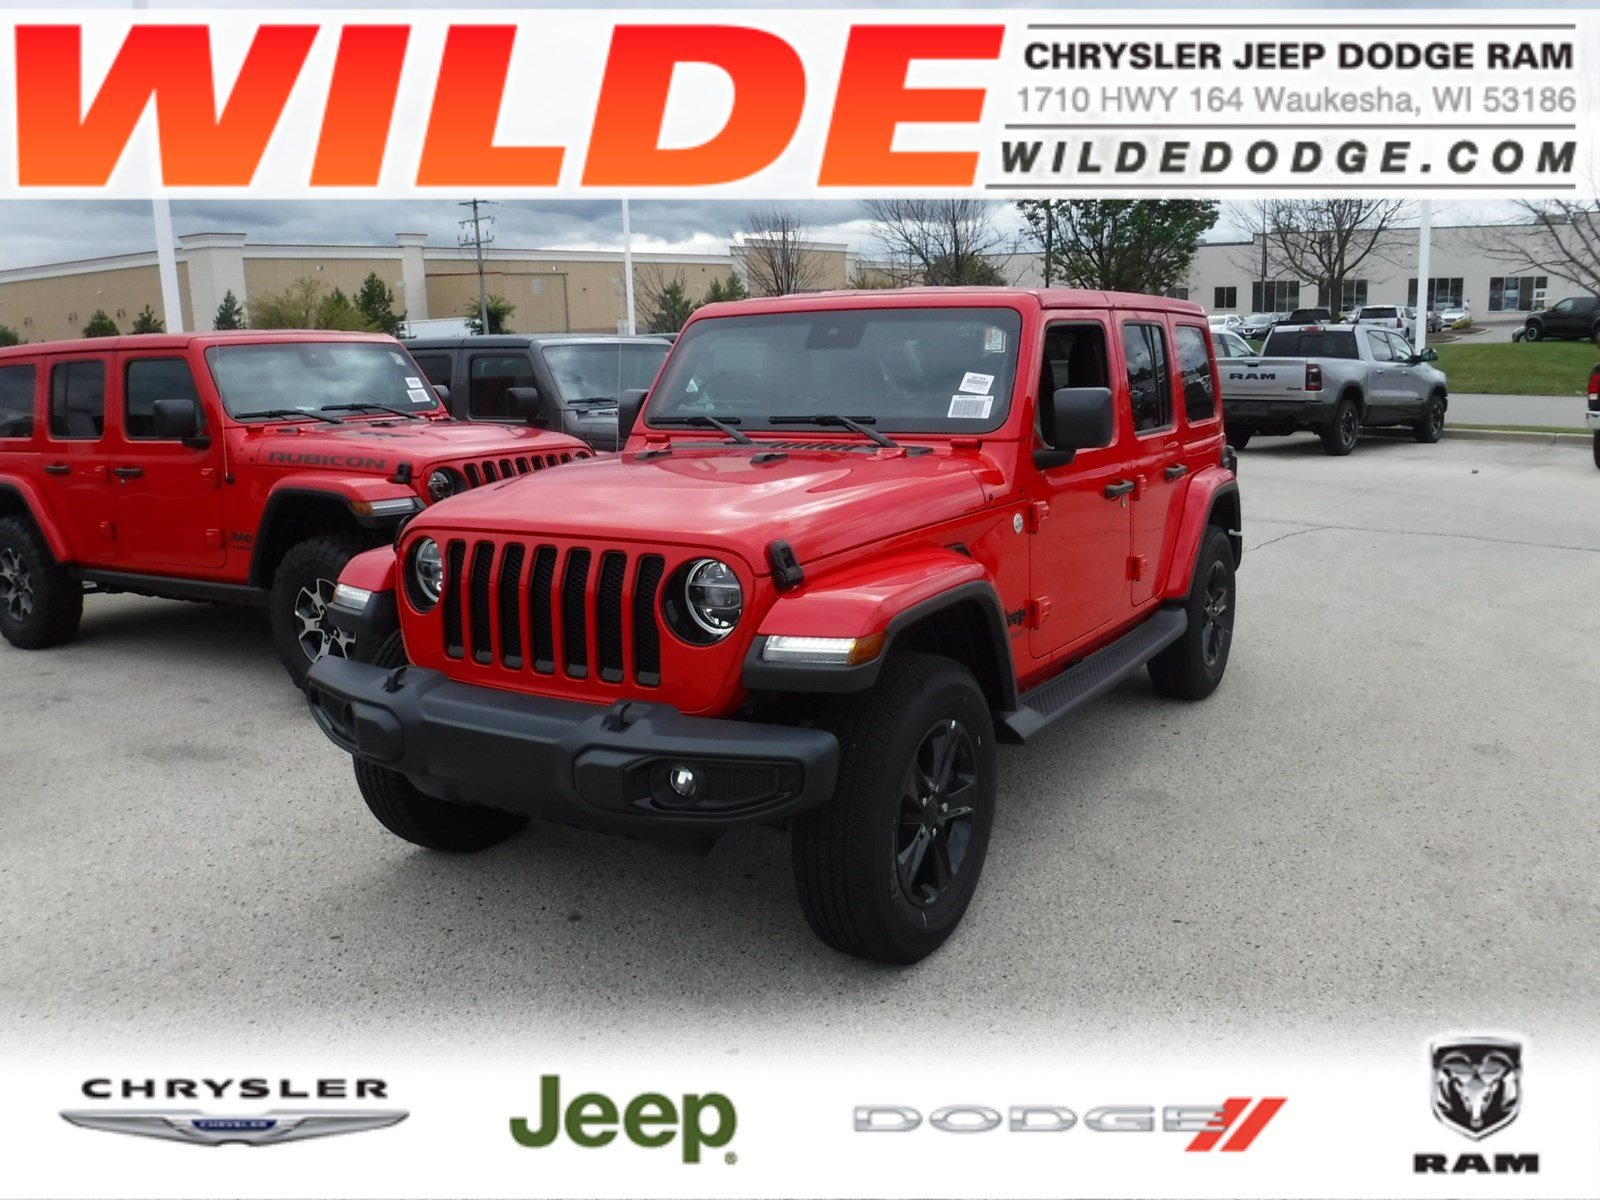 New 2019 Jeep Wrangler Unlimited Sahara Altitude